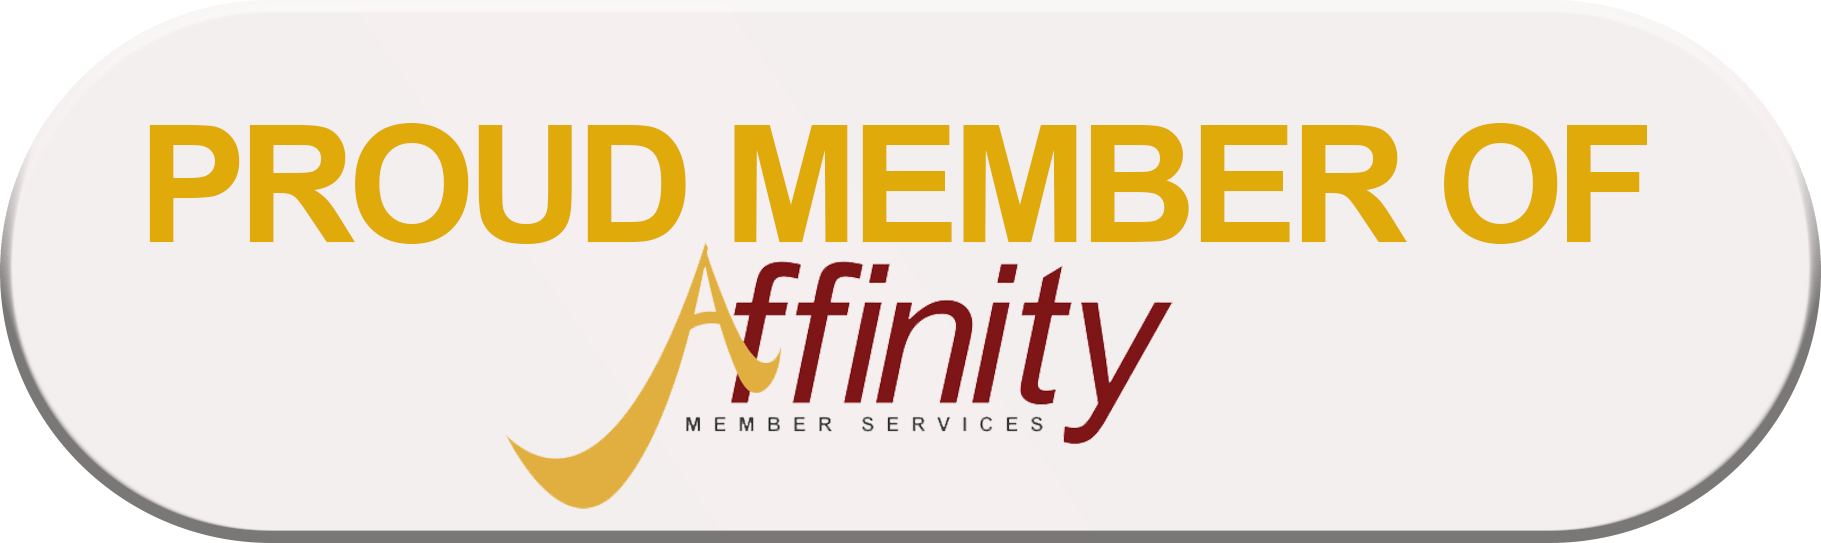 affinity member services